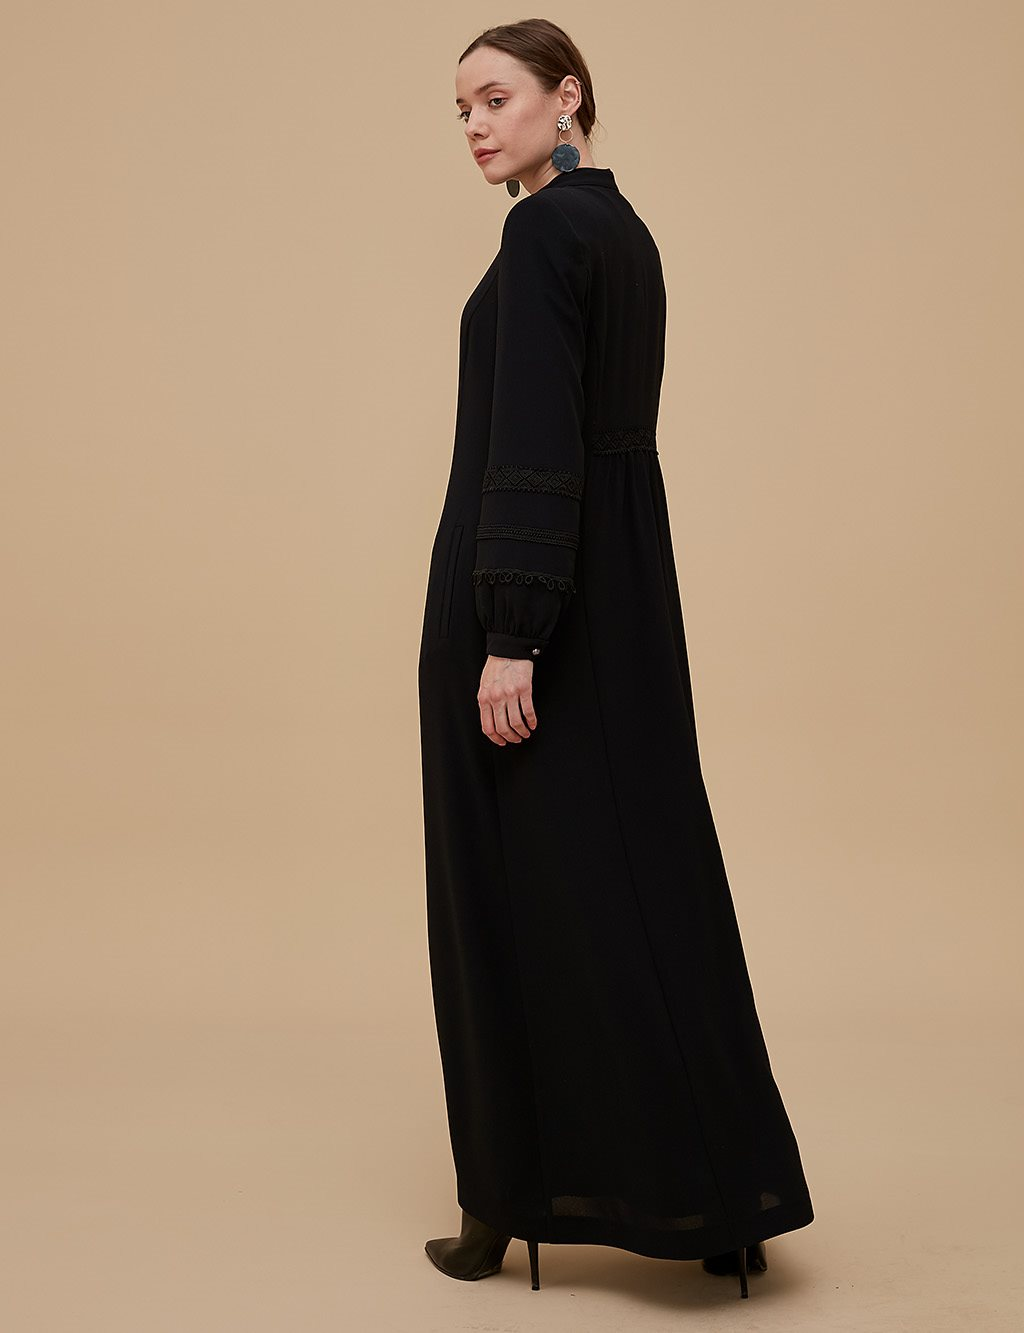 Embroidered Overcoat A9 15024 Black